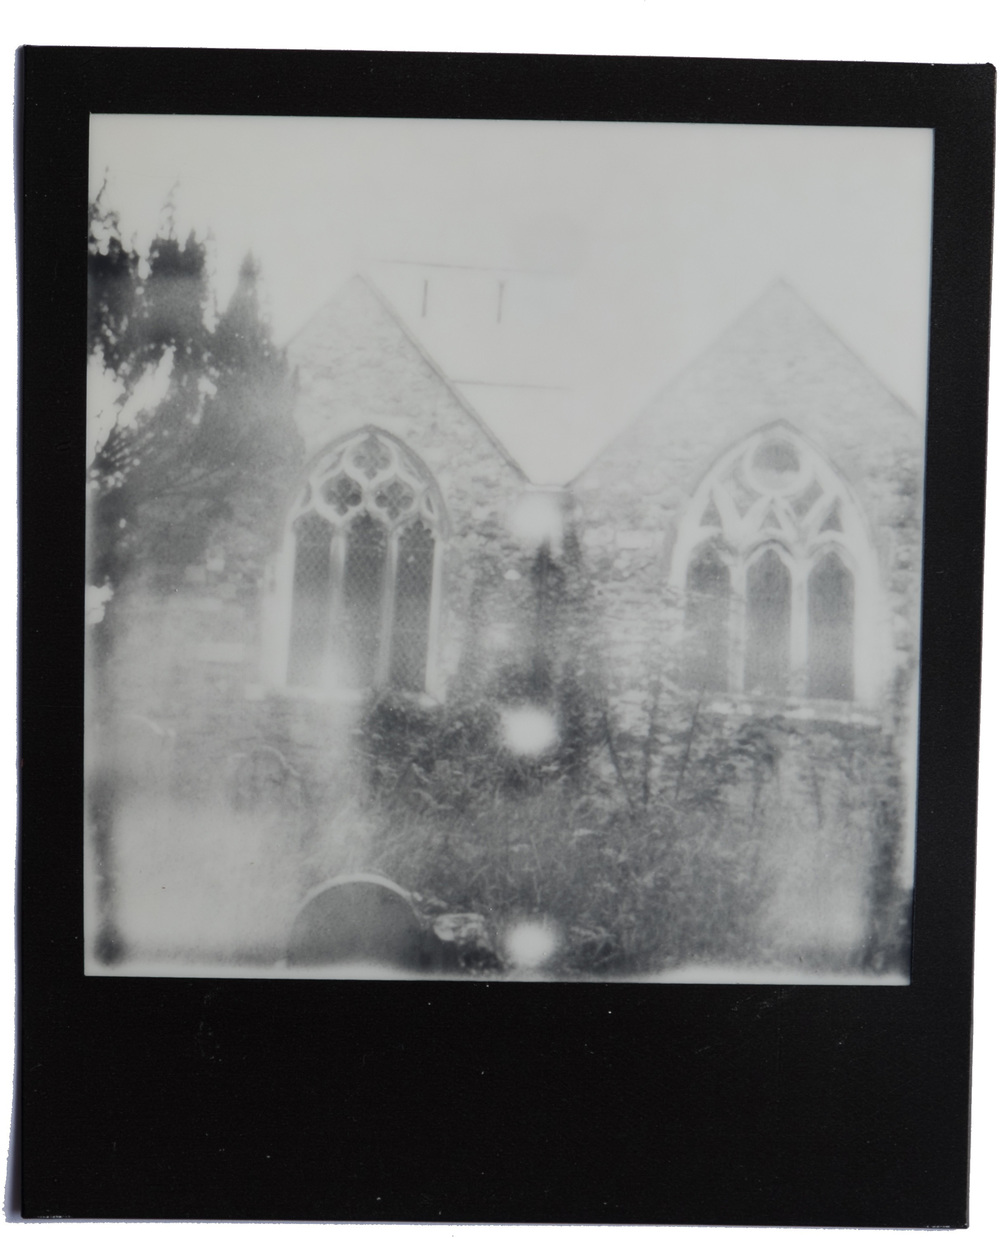 PHOTO TAKEN WITH POLAROID 1000 LAND CAMERA